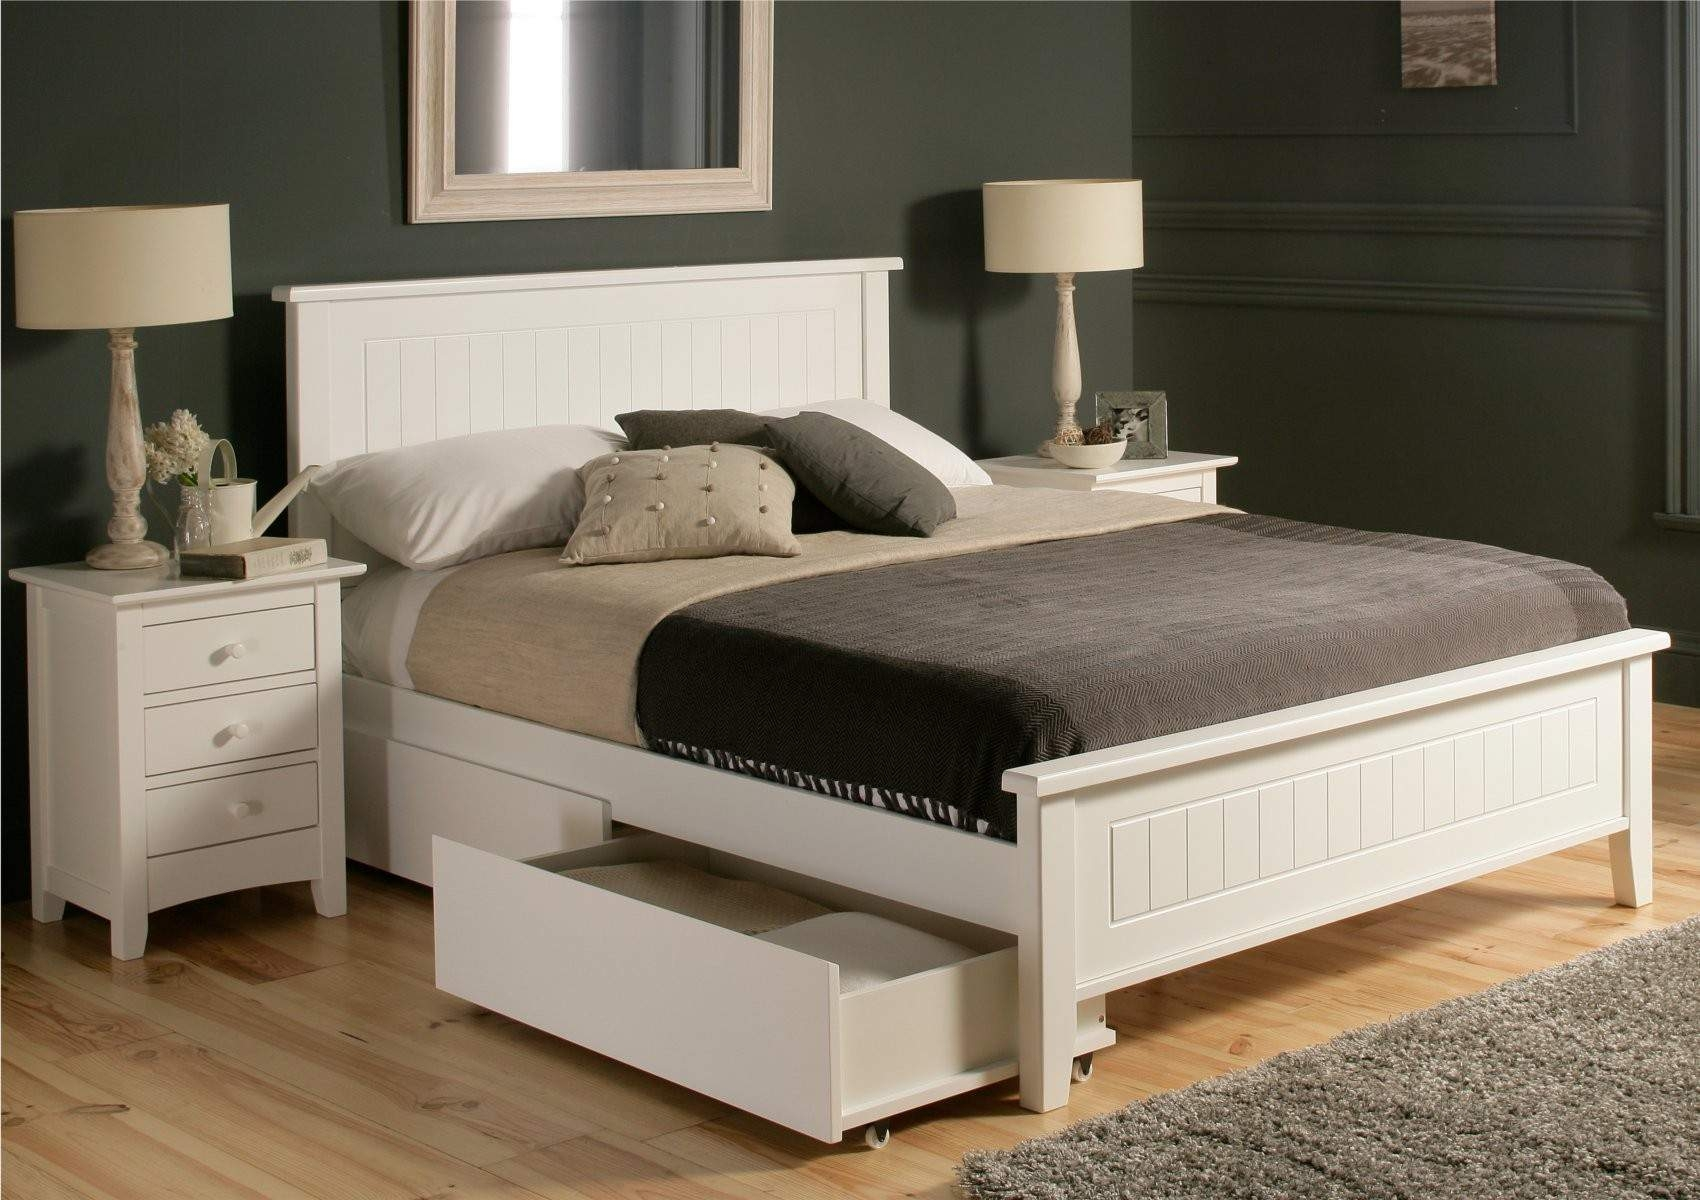 Bed Frames With Drawers Underneath